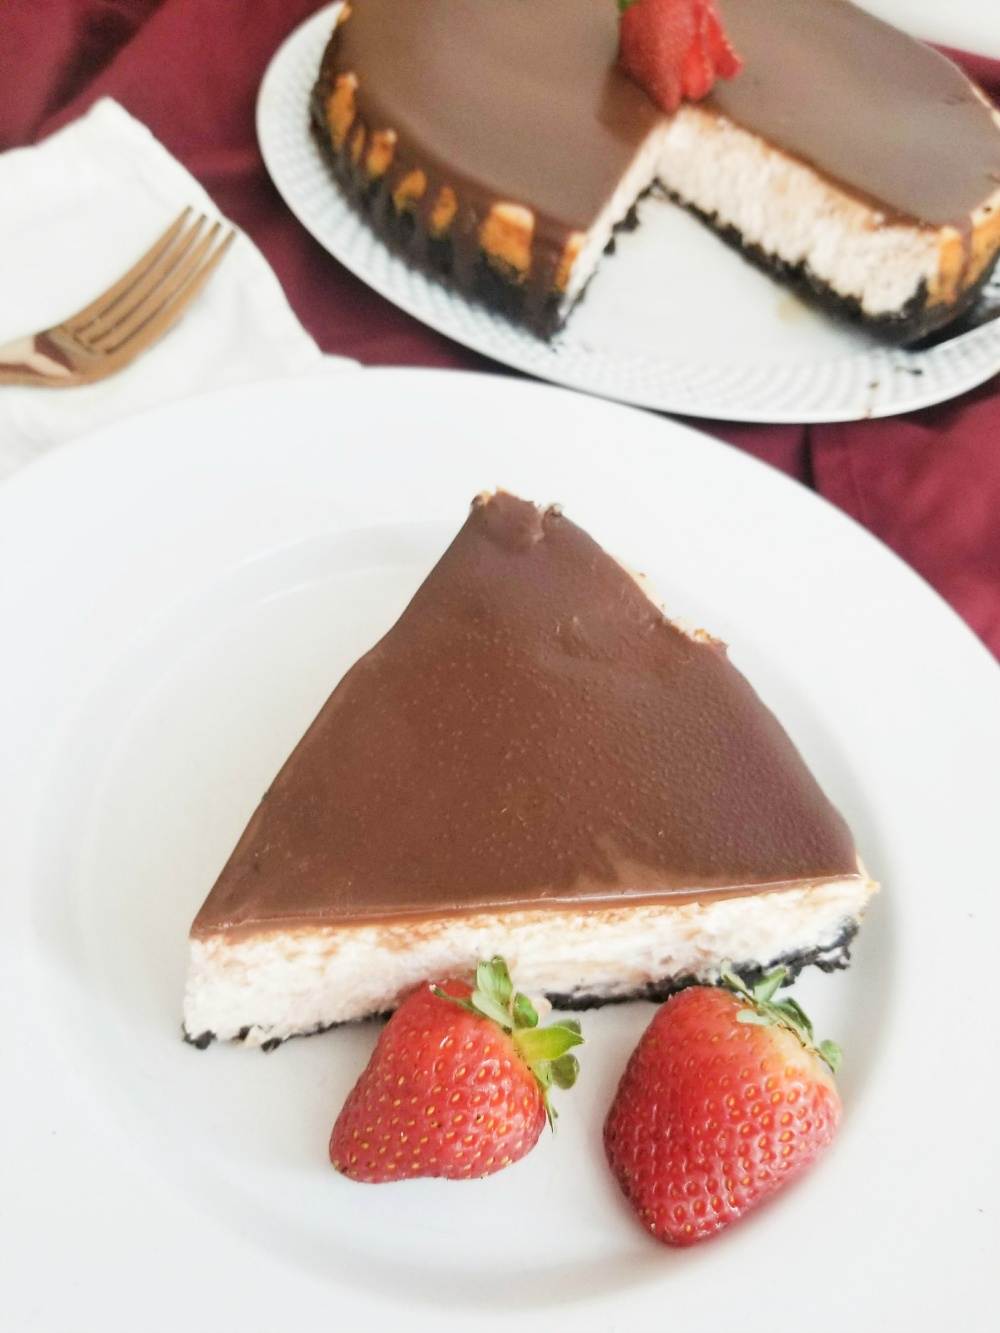 Tasty Chocolate Covered Strawberry Cheesecake